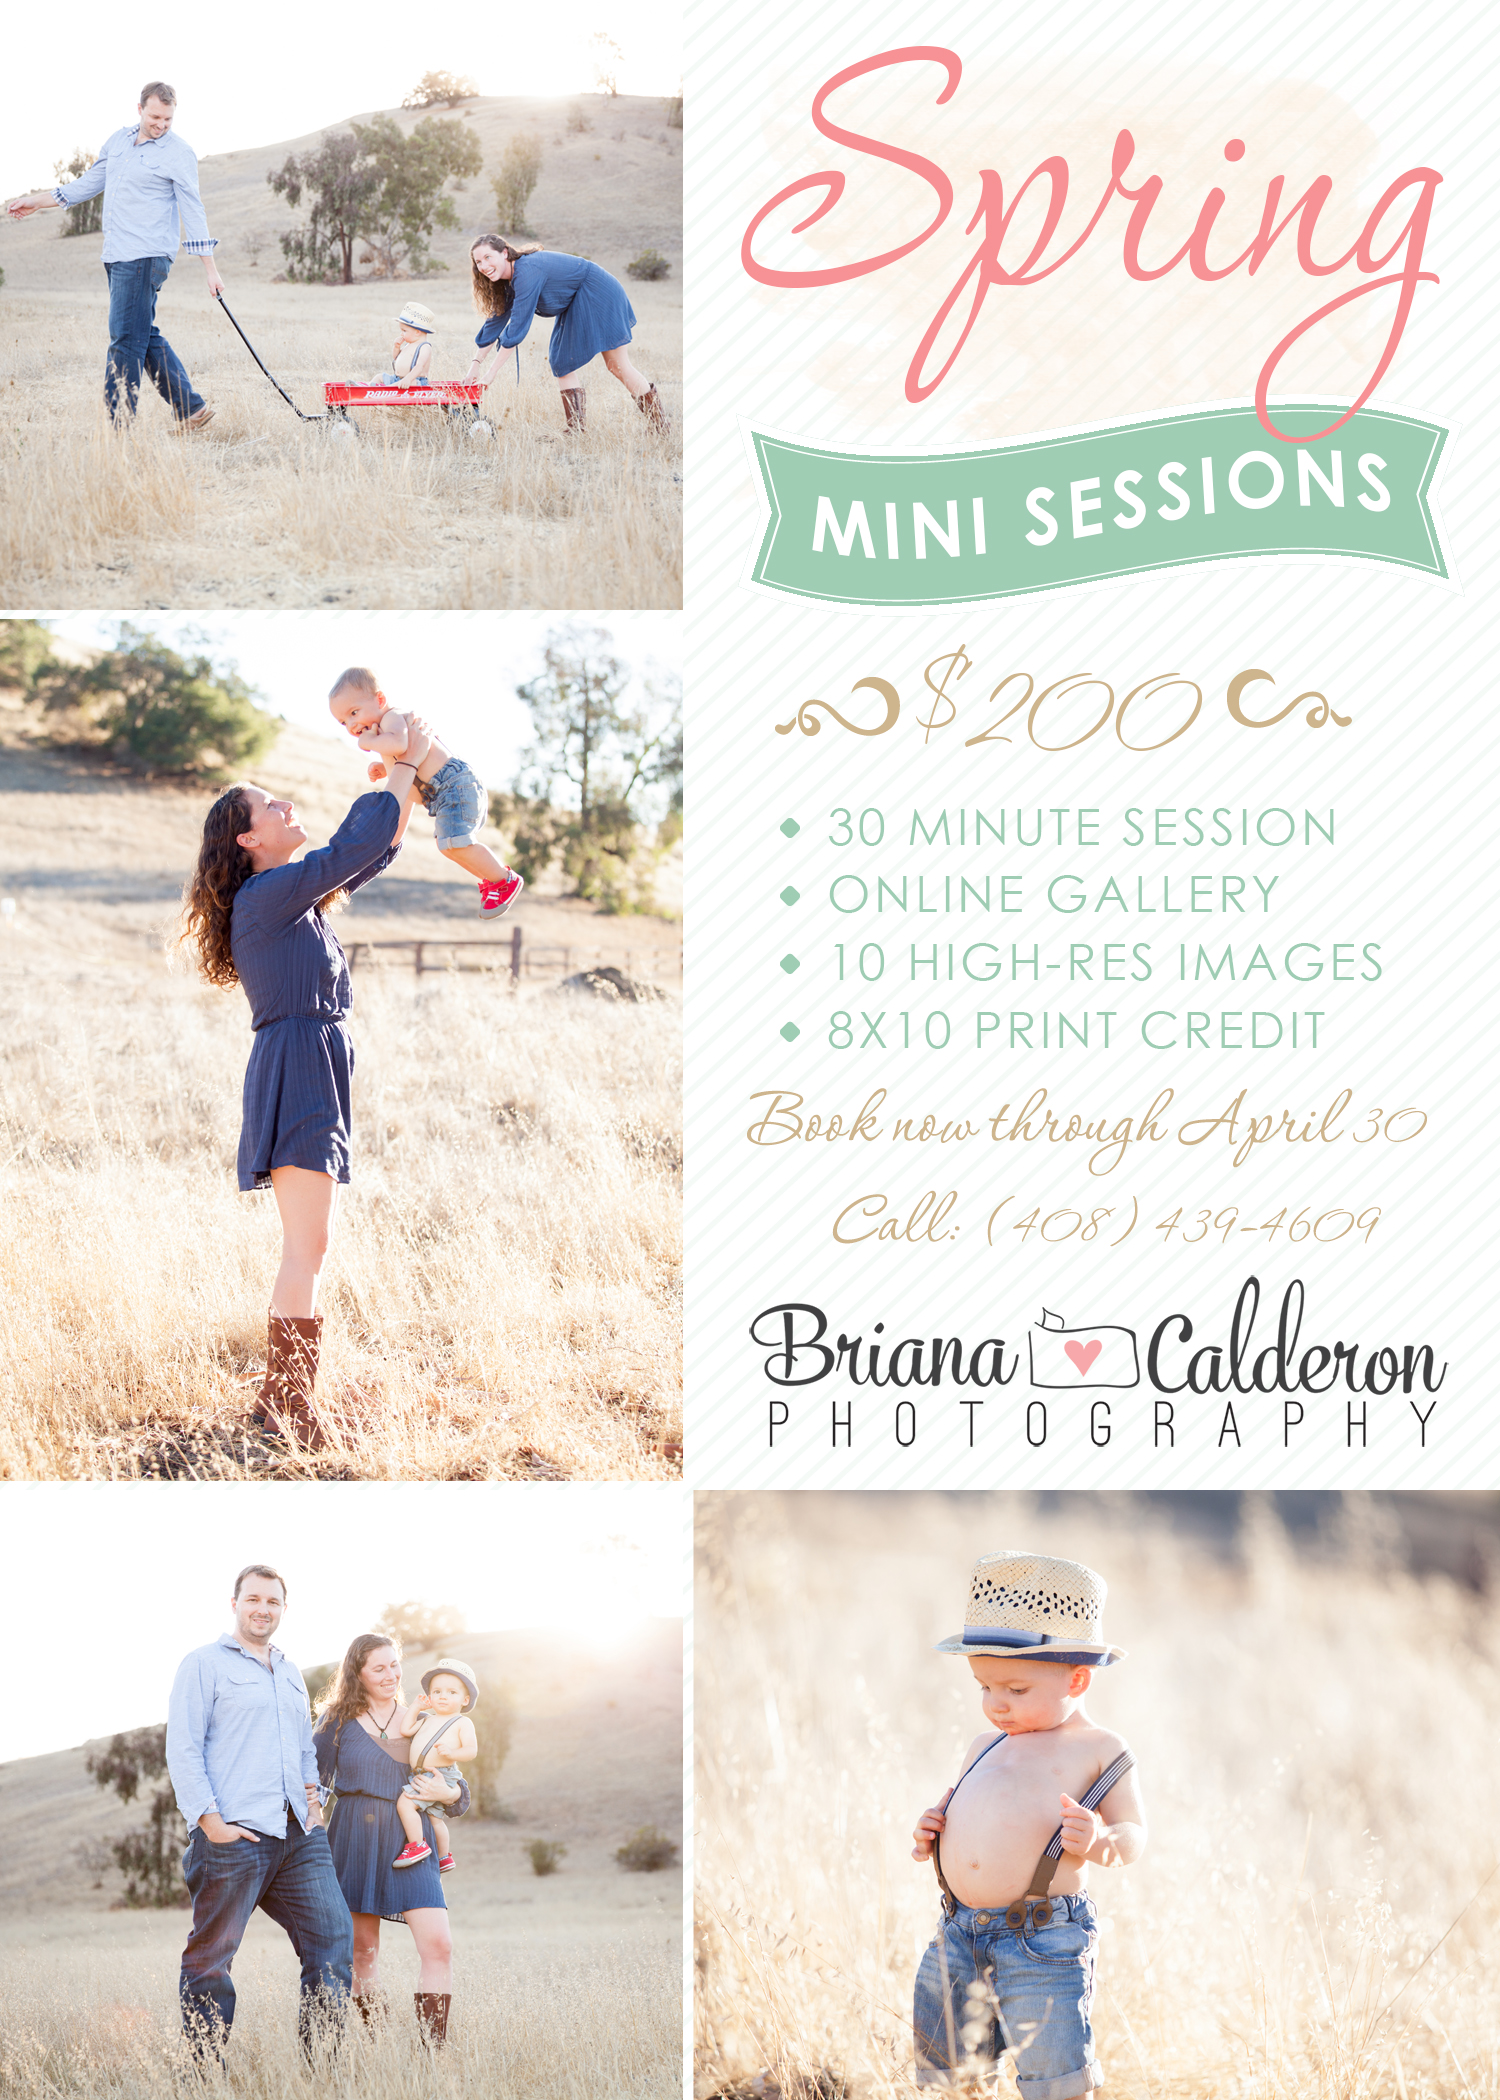 Spring 2015 Mini sessions offered till April 30th by Briana Calderon Photography based in the San Francisco Bay Area.